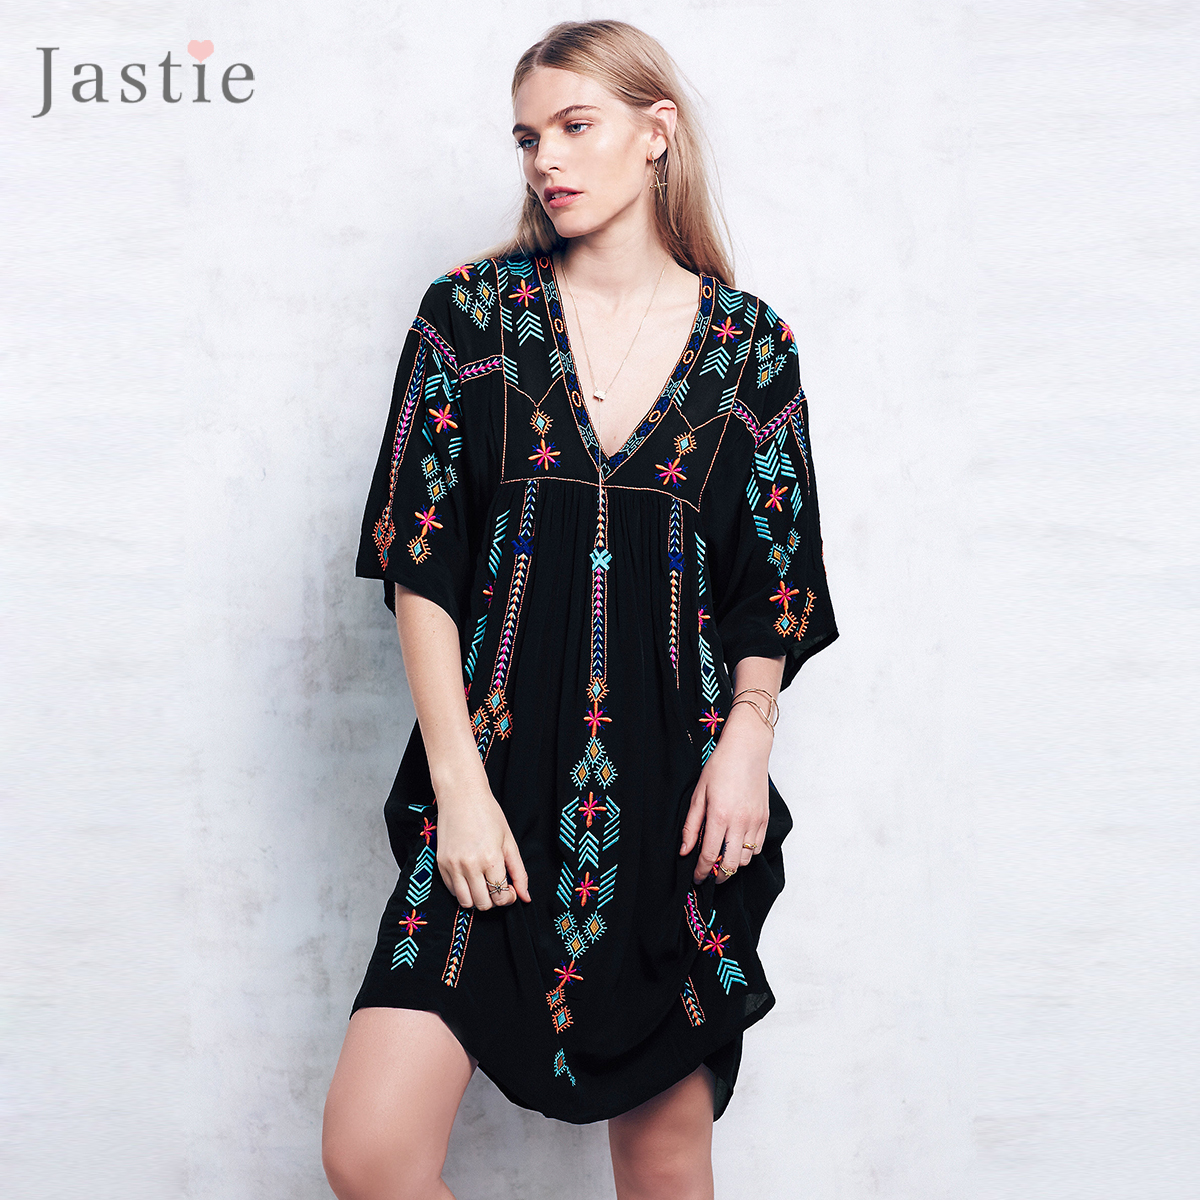 a396a24942f62 Autumn Women Tops Vintage Ethnic Printed Kimono Cardigan Loose Casual  Batwing Sleeves Jacket Coat Boho Poncho Blouses-in Basic Jackets from  Women's ...